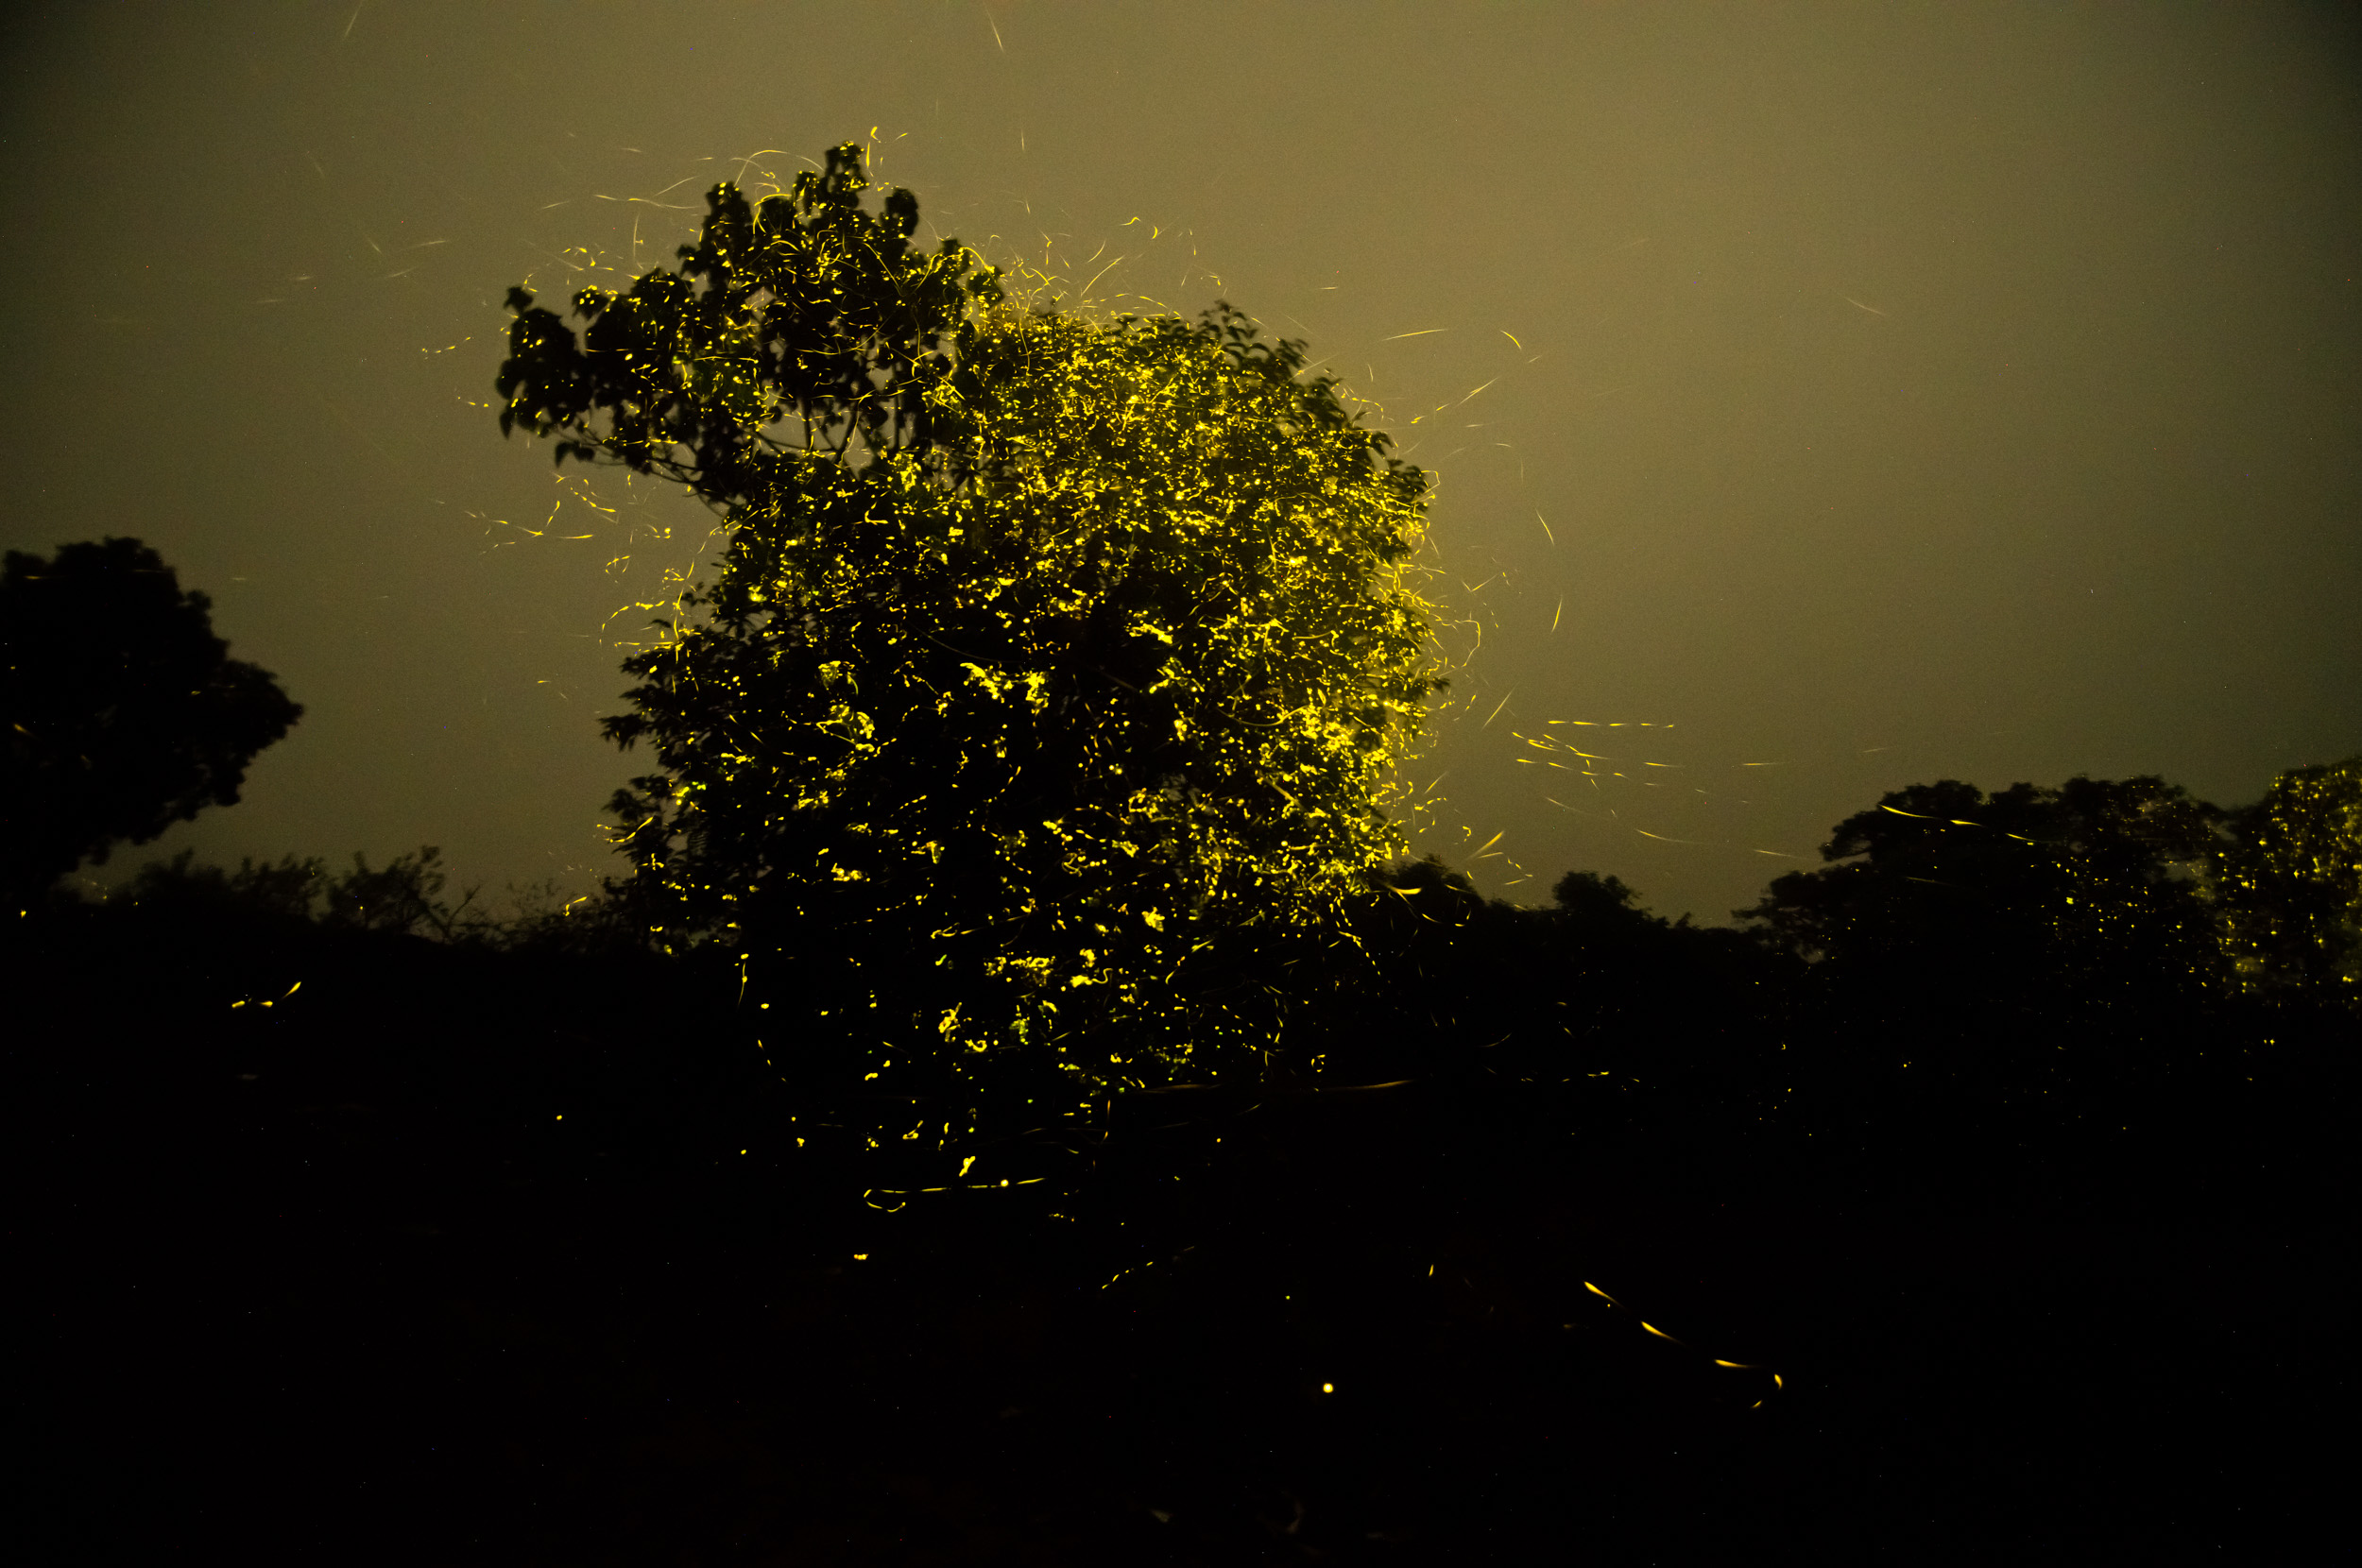 As hot days turn into cool nights, summers make way for monsoon. Fireflies signify the onset of the rains. Before the season of plenty, these beetles use bio-luminescence to call out to potential mates.